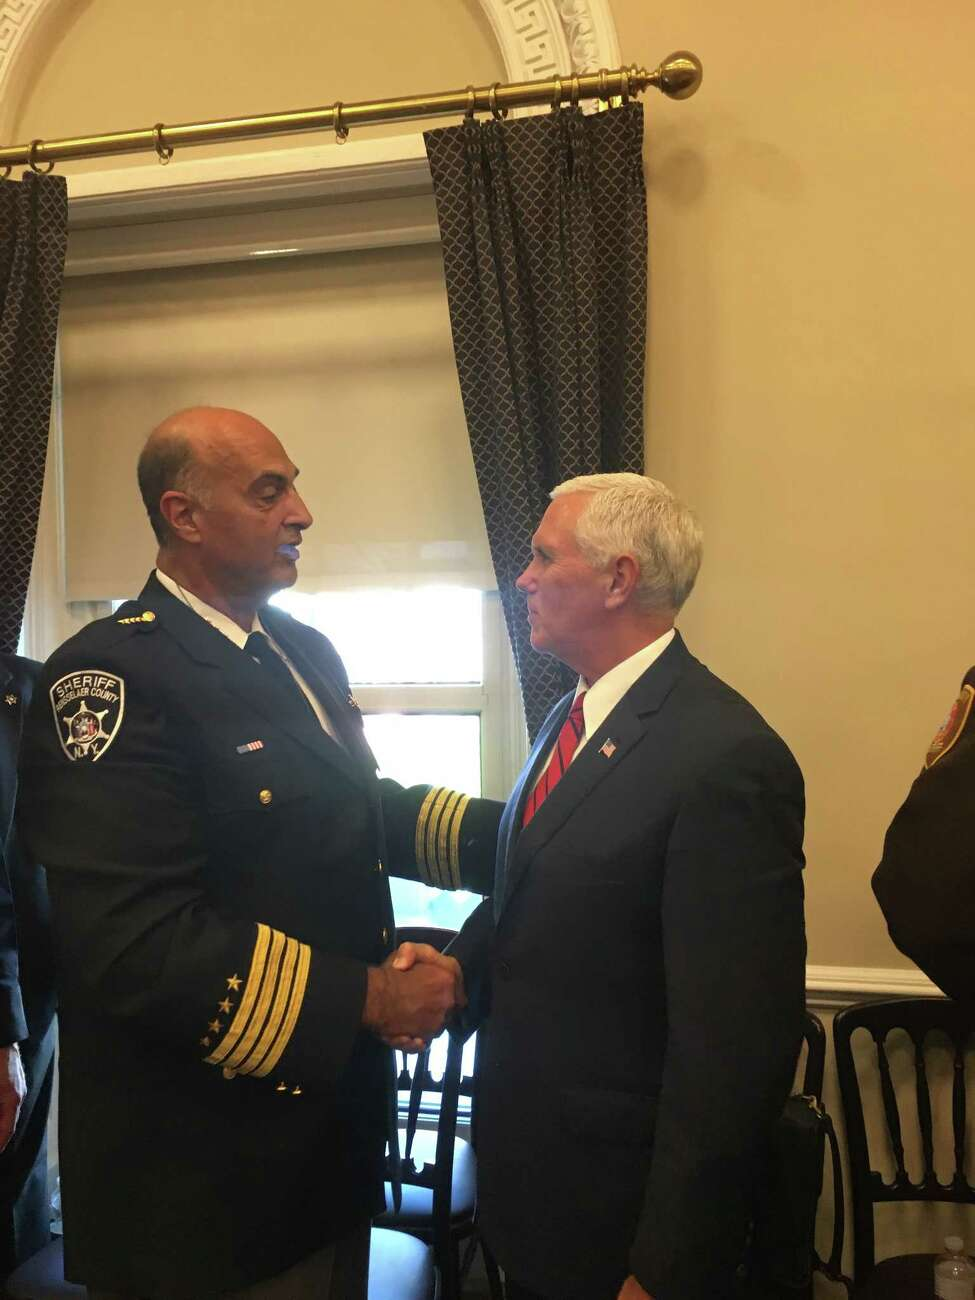 Rensselaer County Sheriff Patrick Russo shakes hands with Vice President Mike Pence at the White House, Washington D.C. Wednesday Sept. 5, 2018.